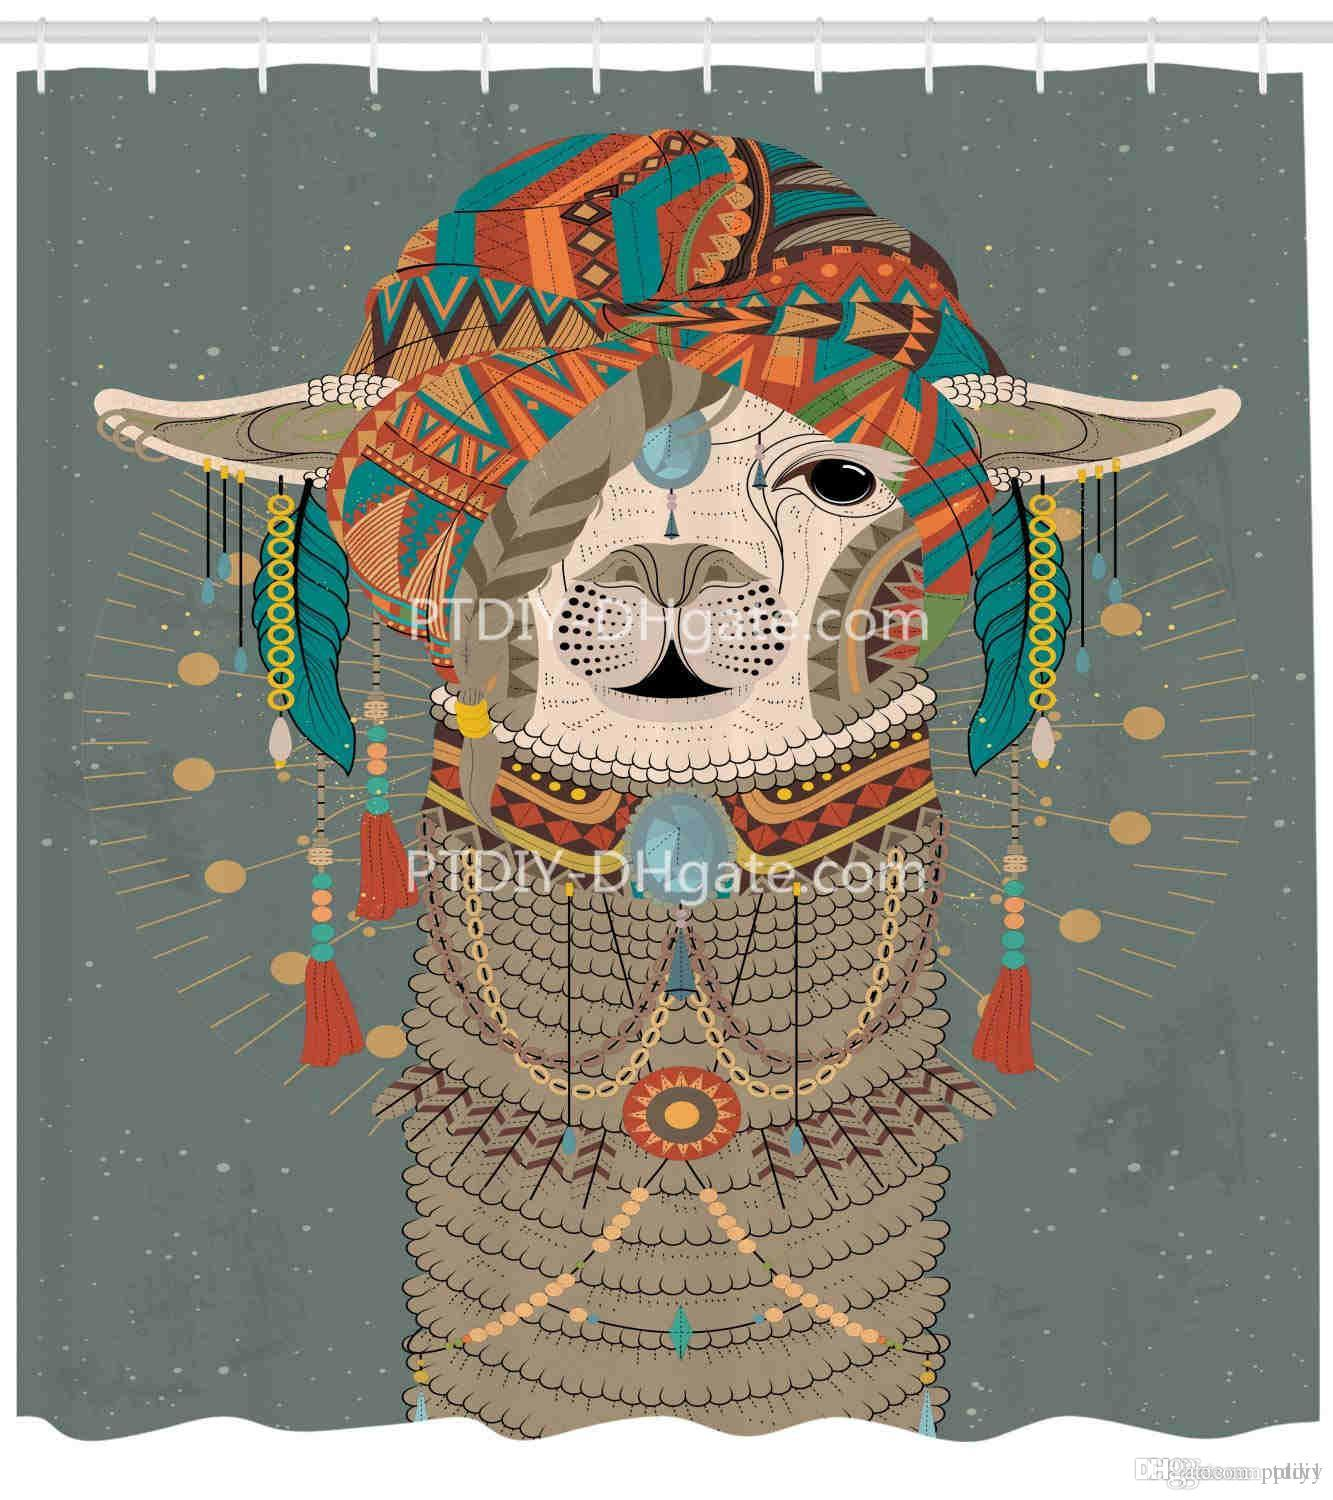 2019 Llama Shower Curtain Colorful Headwear Wearing With Accessories Earrings Necklace Abstract Animal Cloth Fabric Bathroom Decor Set From Ptdiy1